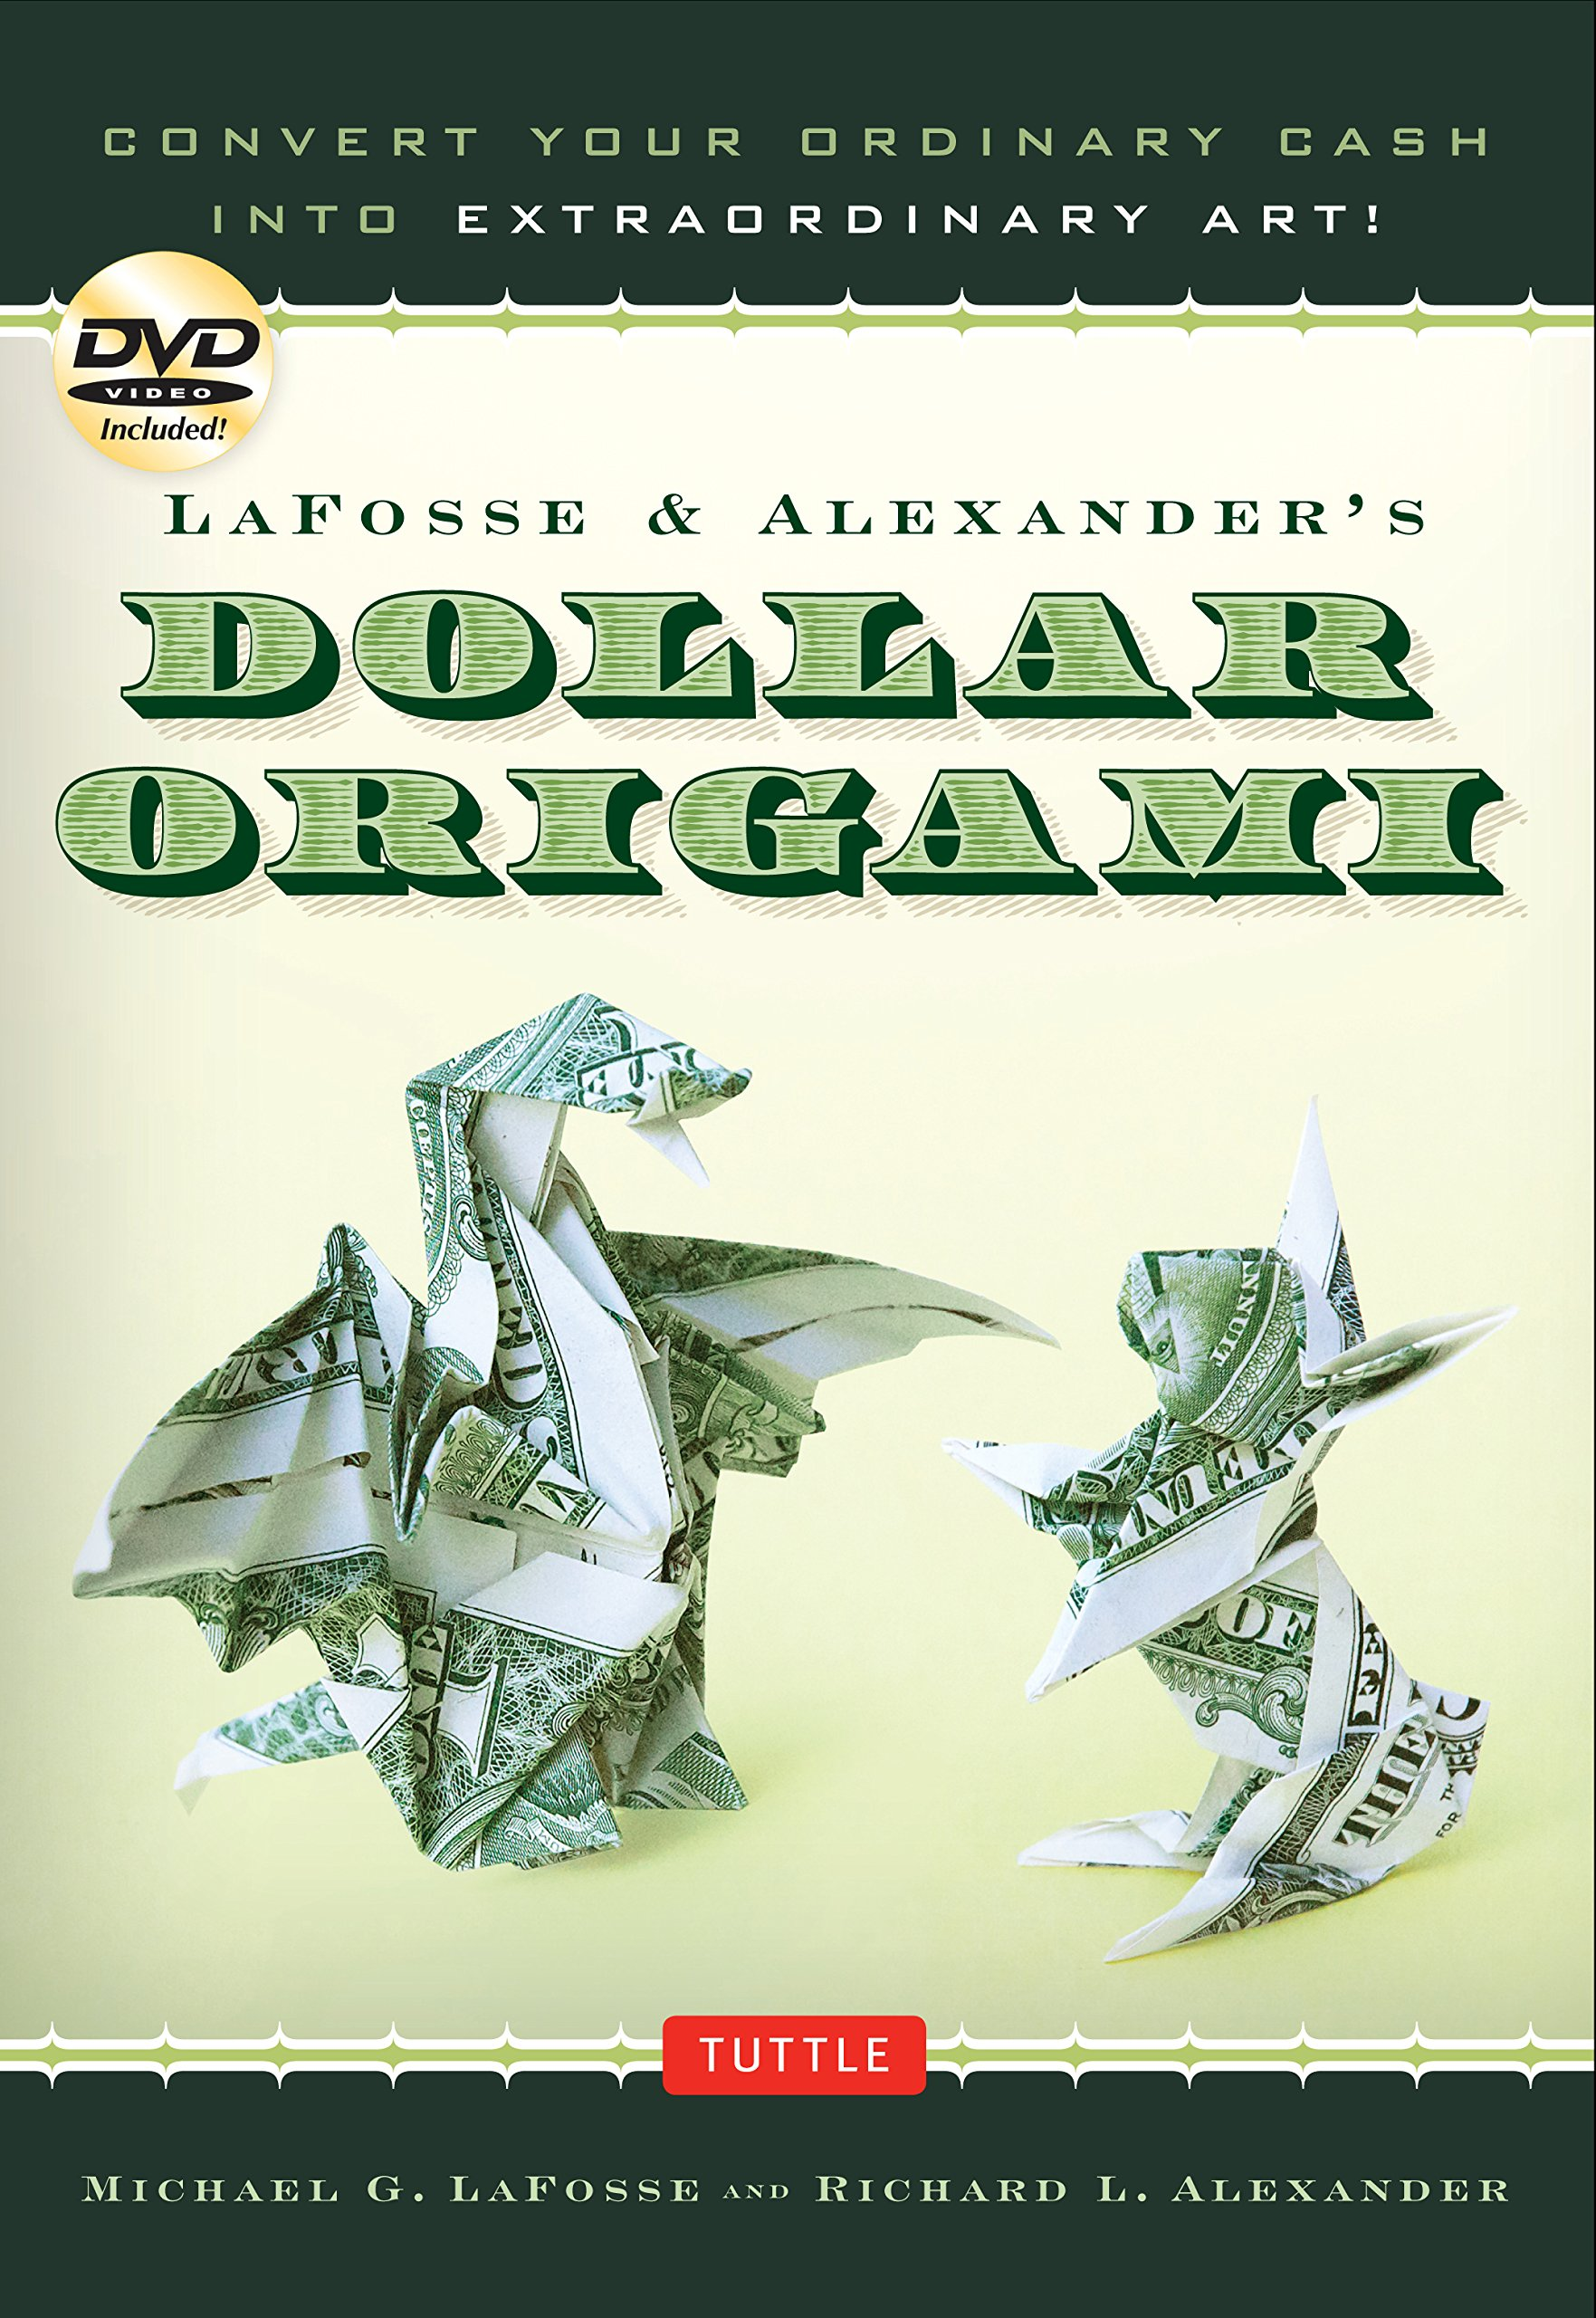 LaFosse & Alexander's Dollar Origami: Convert Your Ordinary Cash into Extraordinary Art!: Origami Book with 48 Origami Paper Dollars, 20 Projects and Instructional DVD PDF